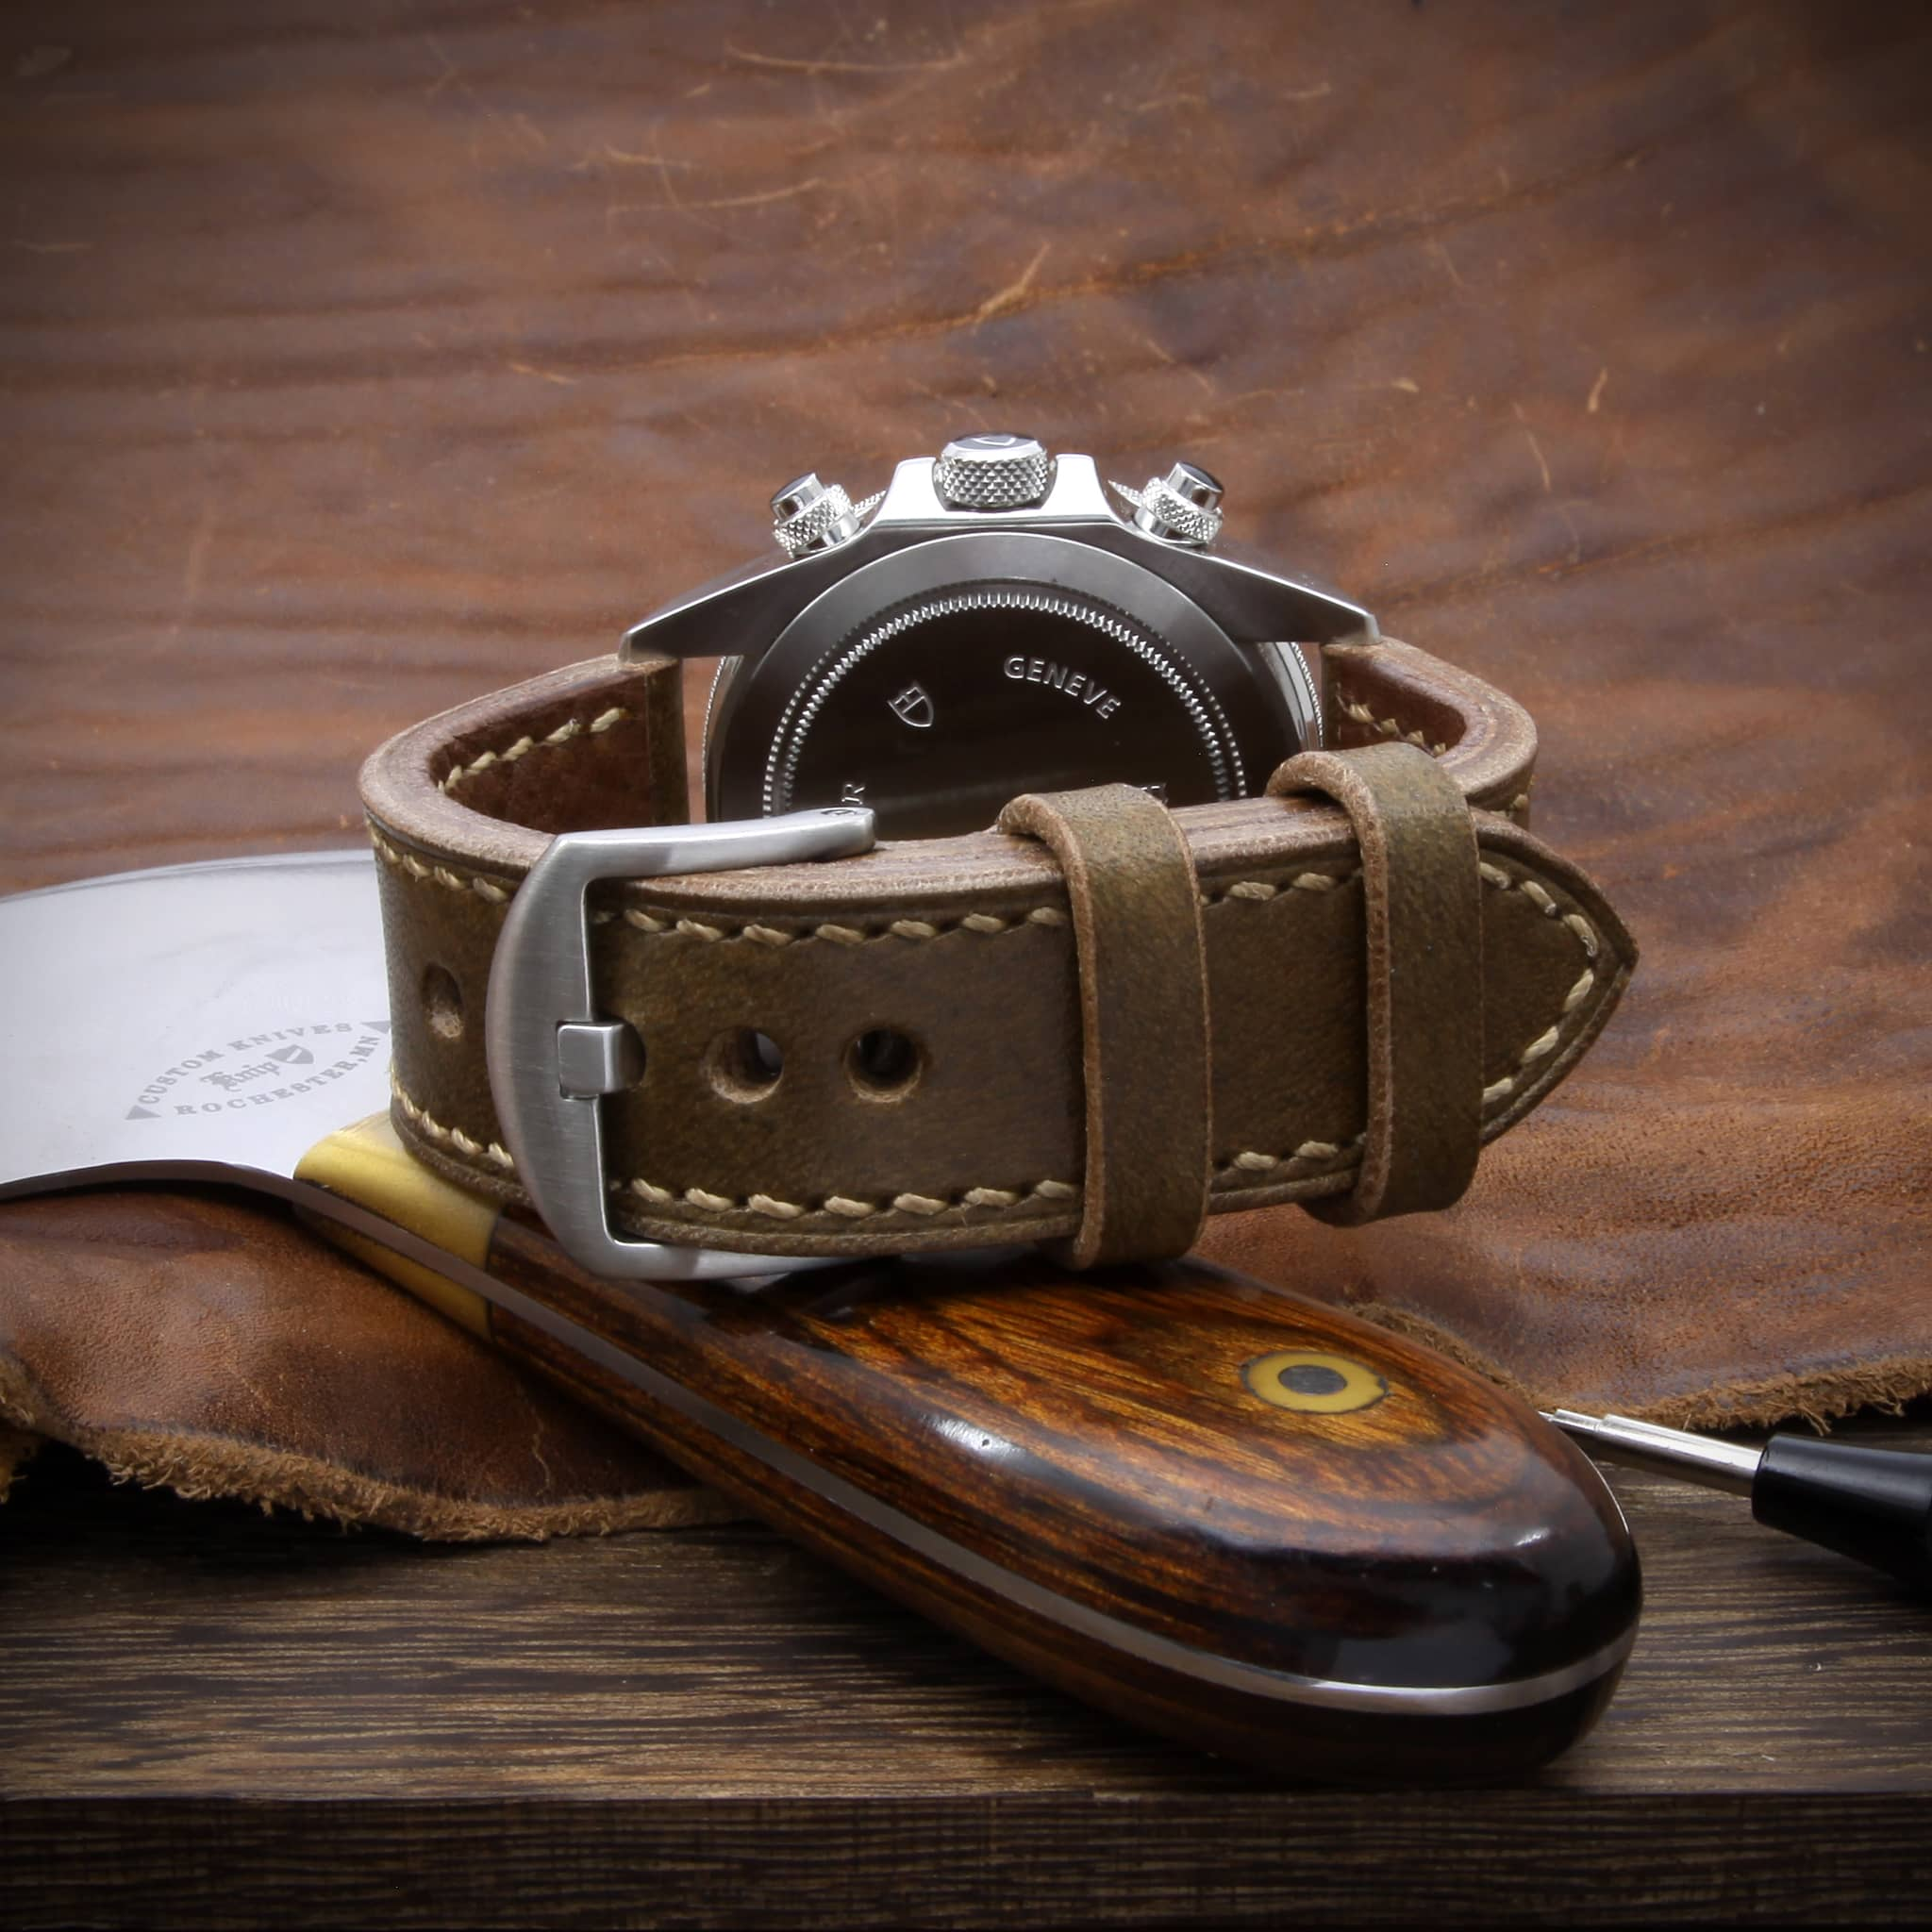 Leather Watch Strap, Sequoia 104 (Coffee Brown) | Full Stitch | TUDOR Watch | Cozy Handmade